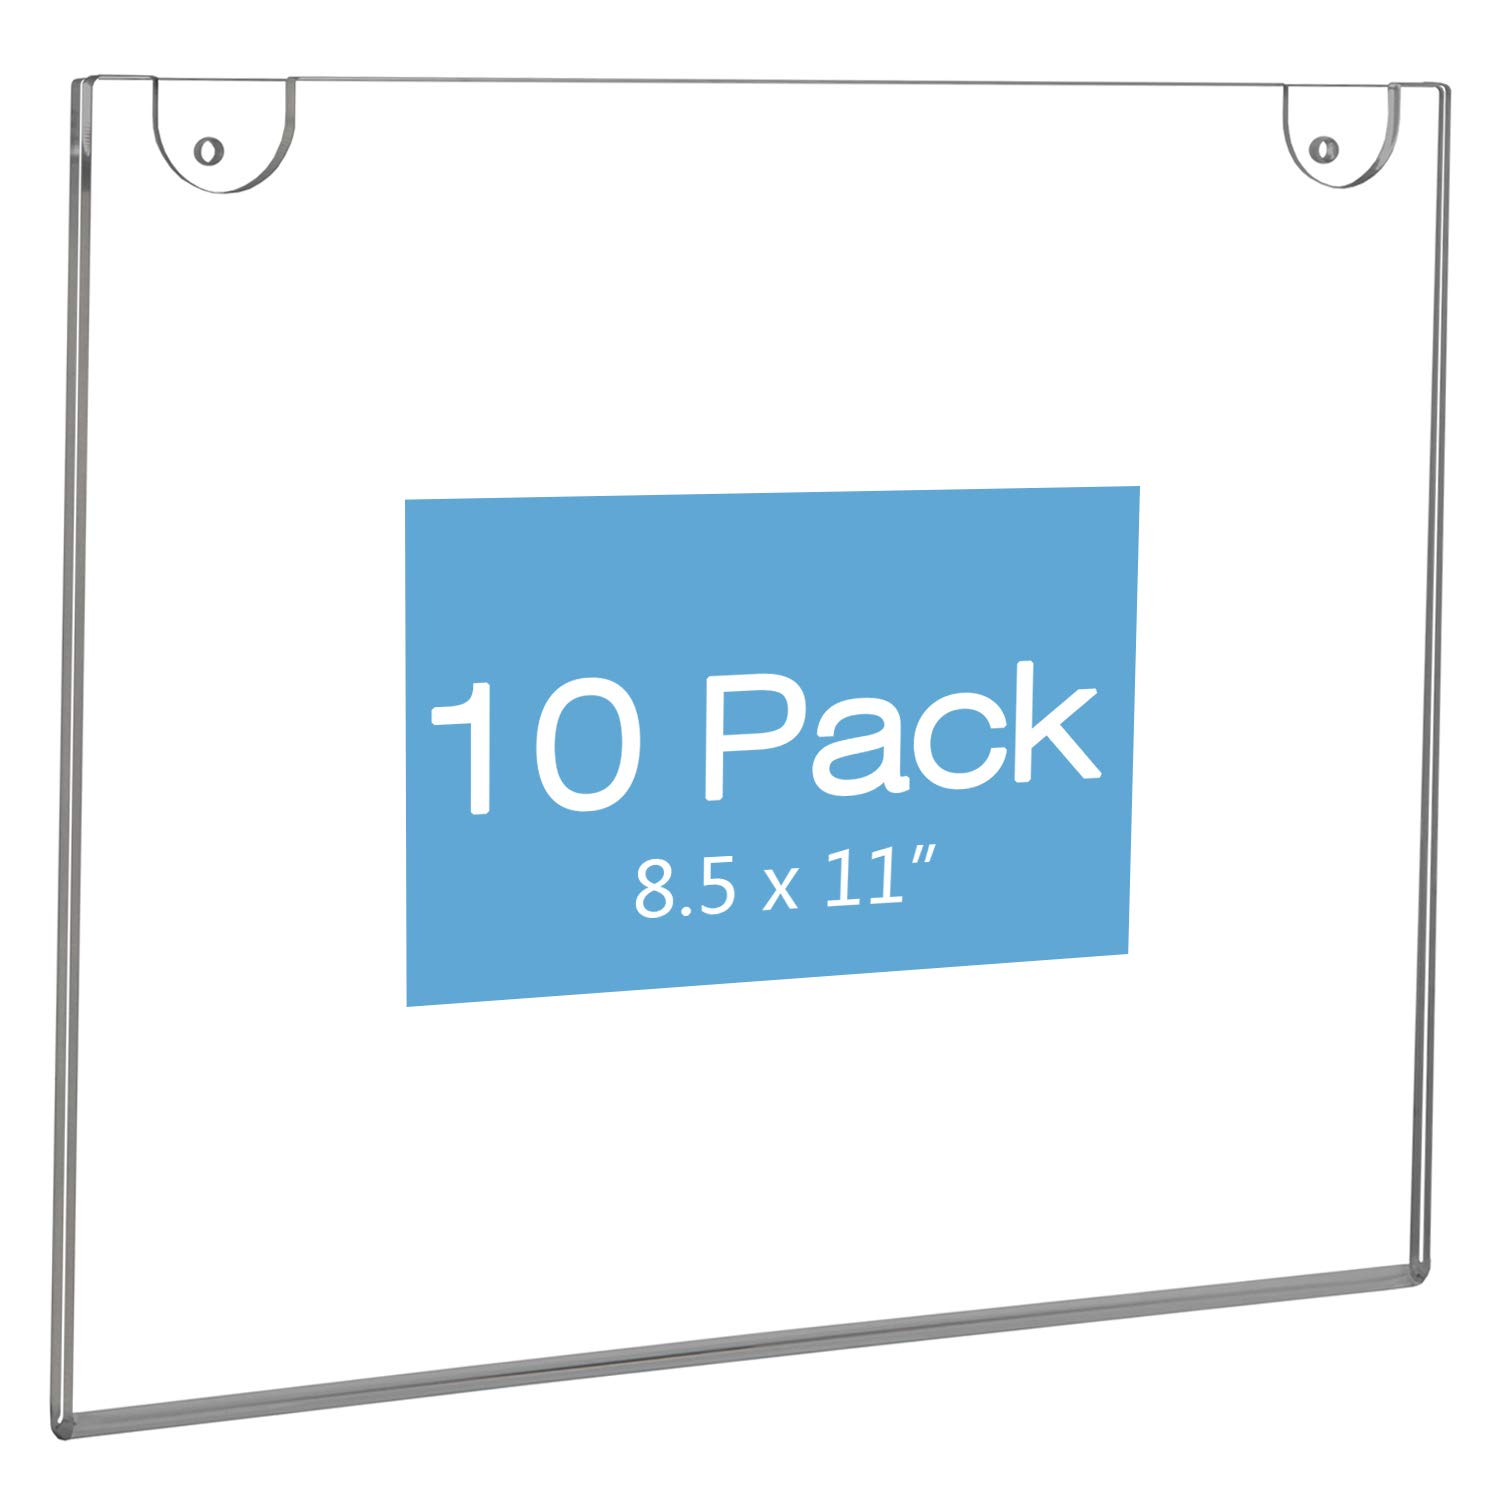 NIUBEE 10Pack 8.5x11 Sign Holder Horizontal for Wall Door, Clear Acrylic Picture Frame for Paper with Free 3M Tape and Mounting Screws by NIUBEE